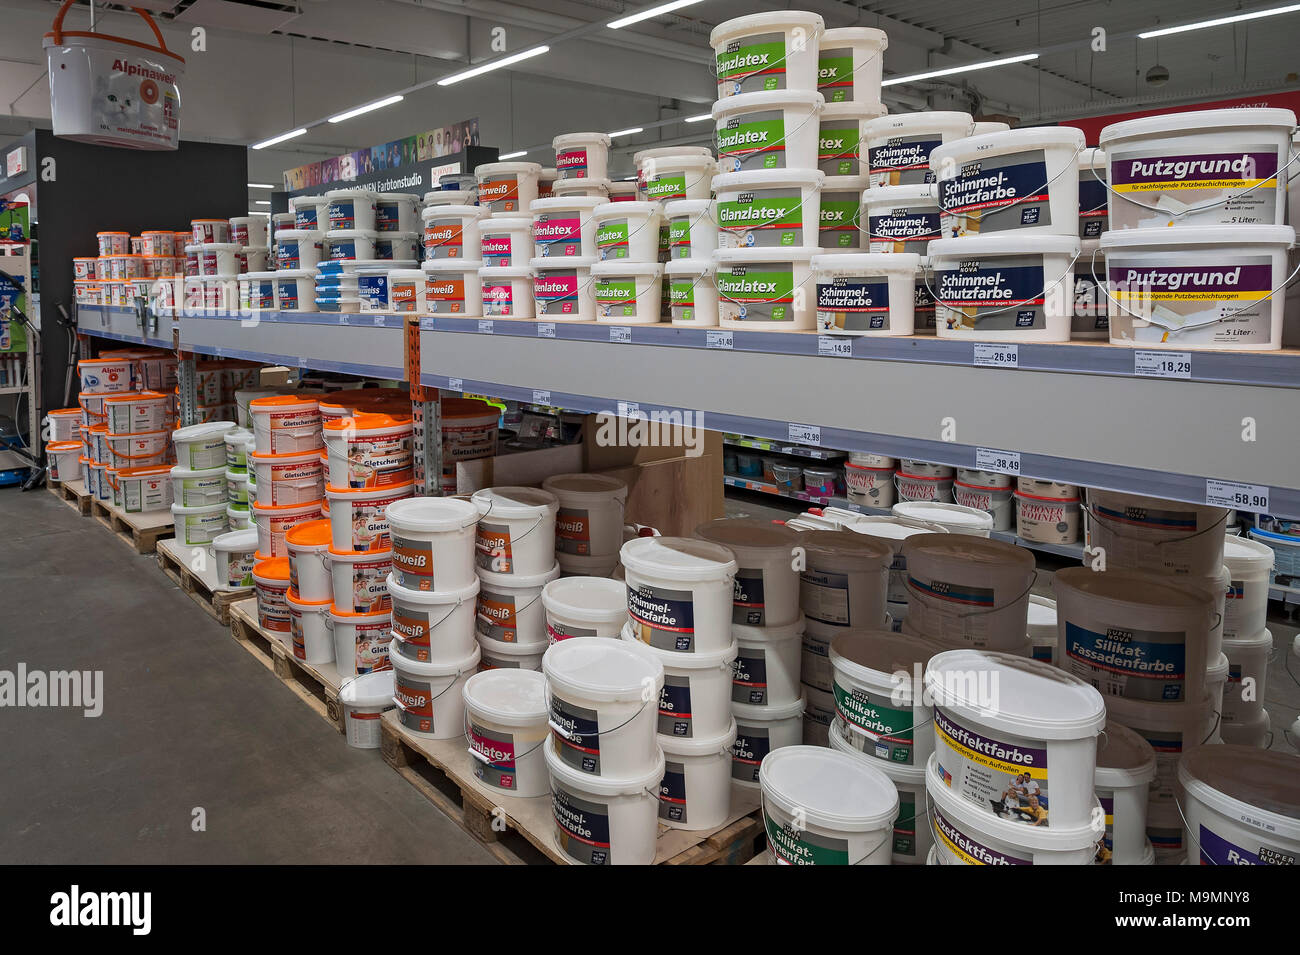 Hardware stock photos hardware stock images alamy - Wilkinson hardware stores head office ...